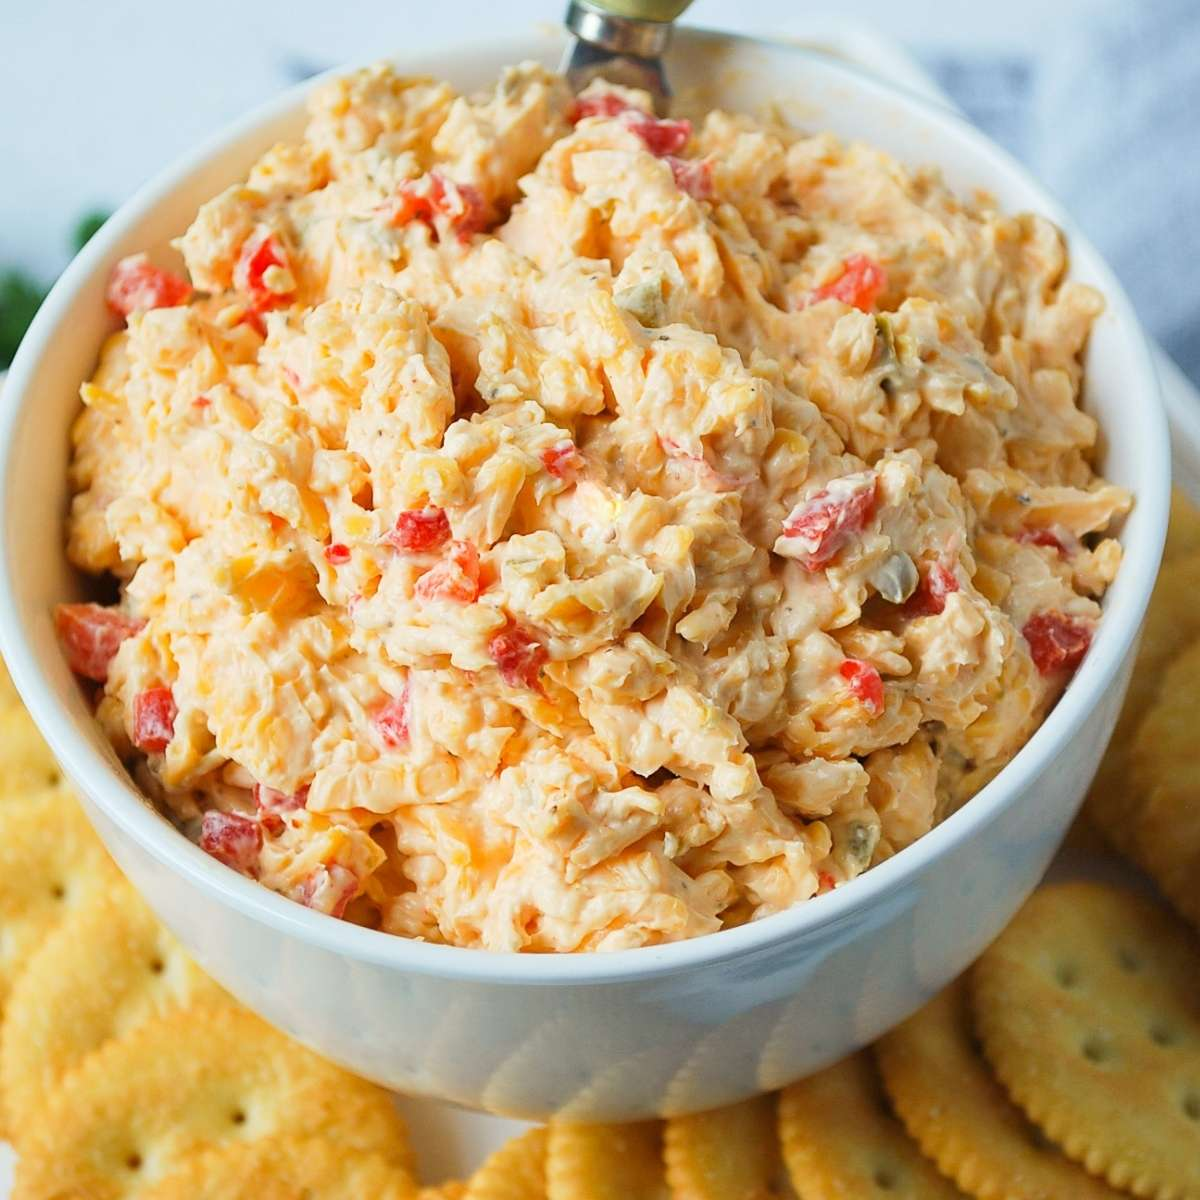 close up of jalapeno pimento cheese in a serving bowl with crackers